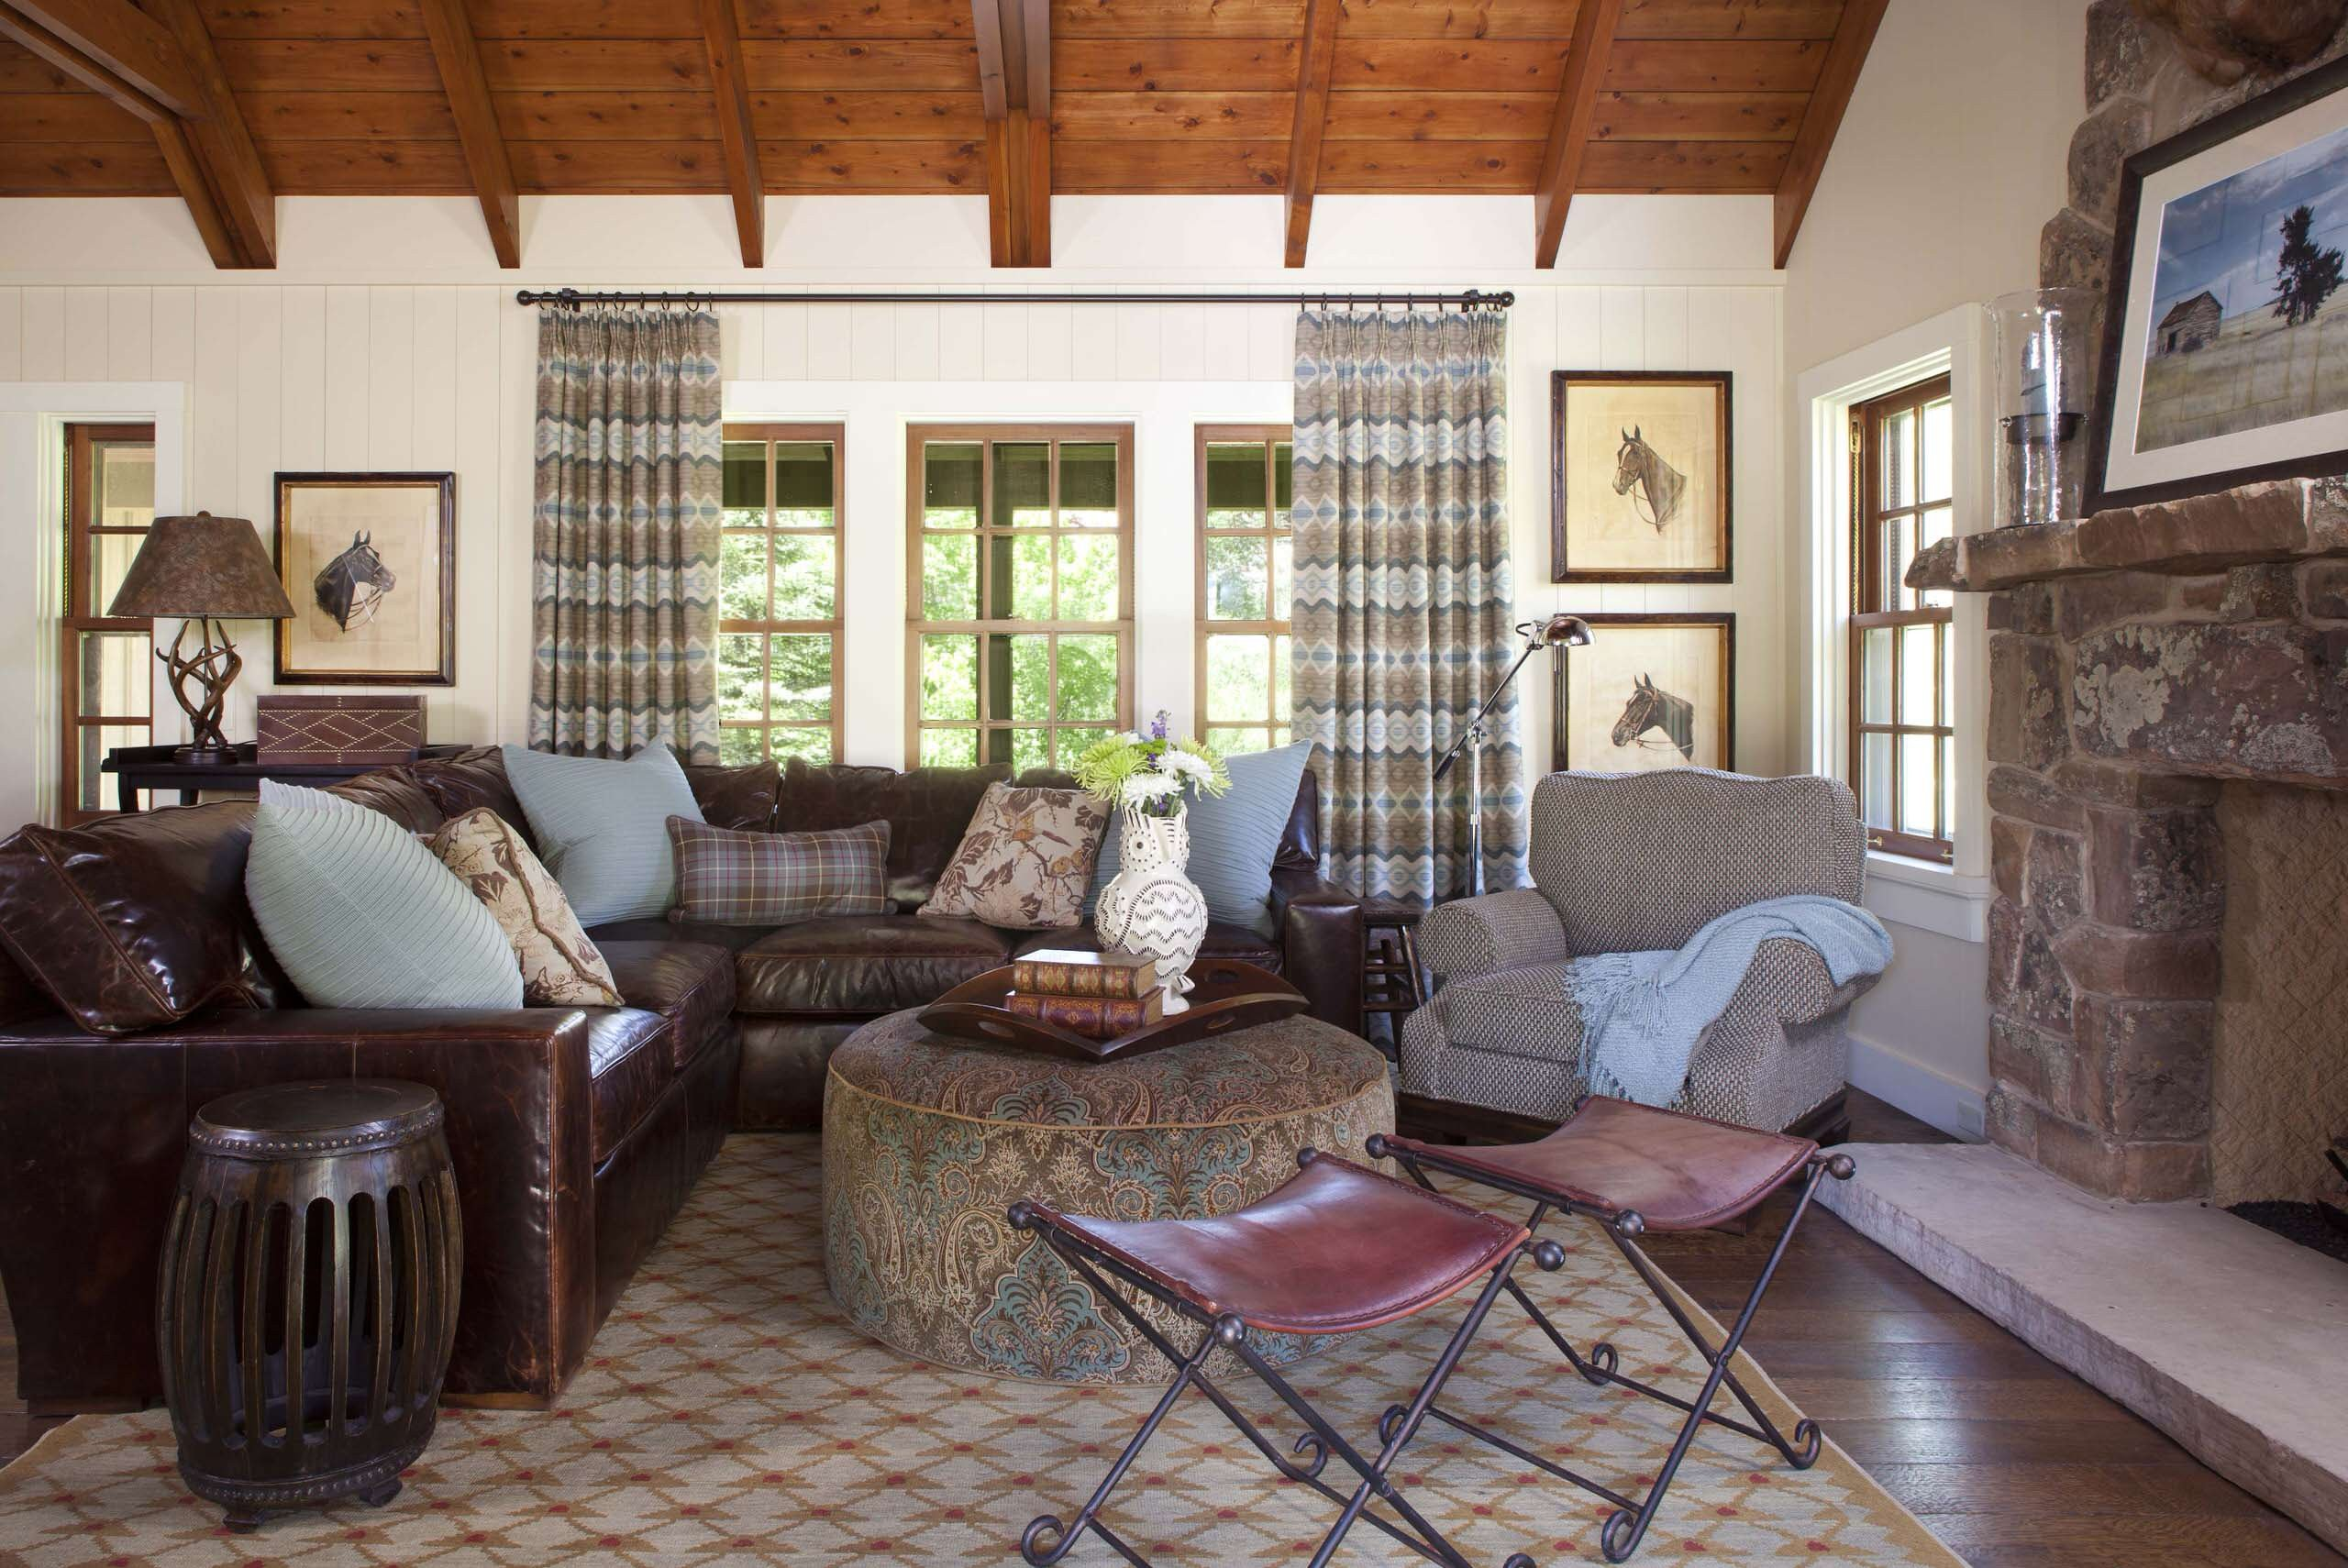 Horse Decor for Living Room Beautiful Giddy Up with these Amazing Horse Decor Ideas